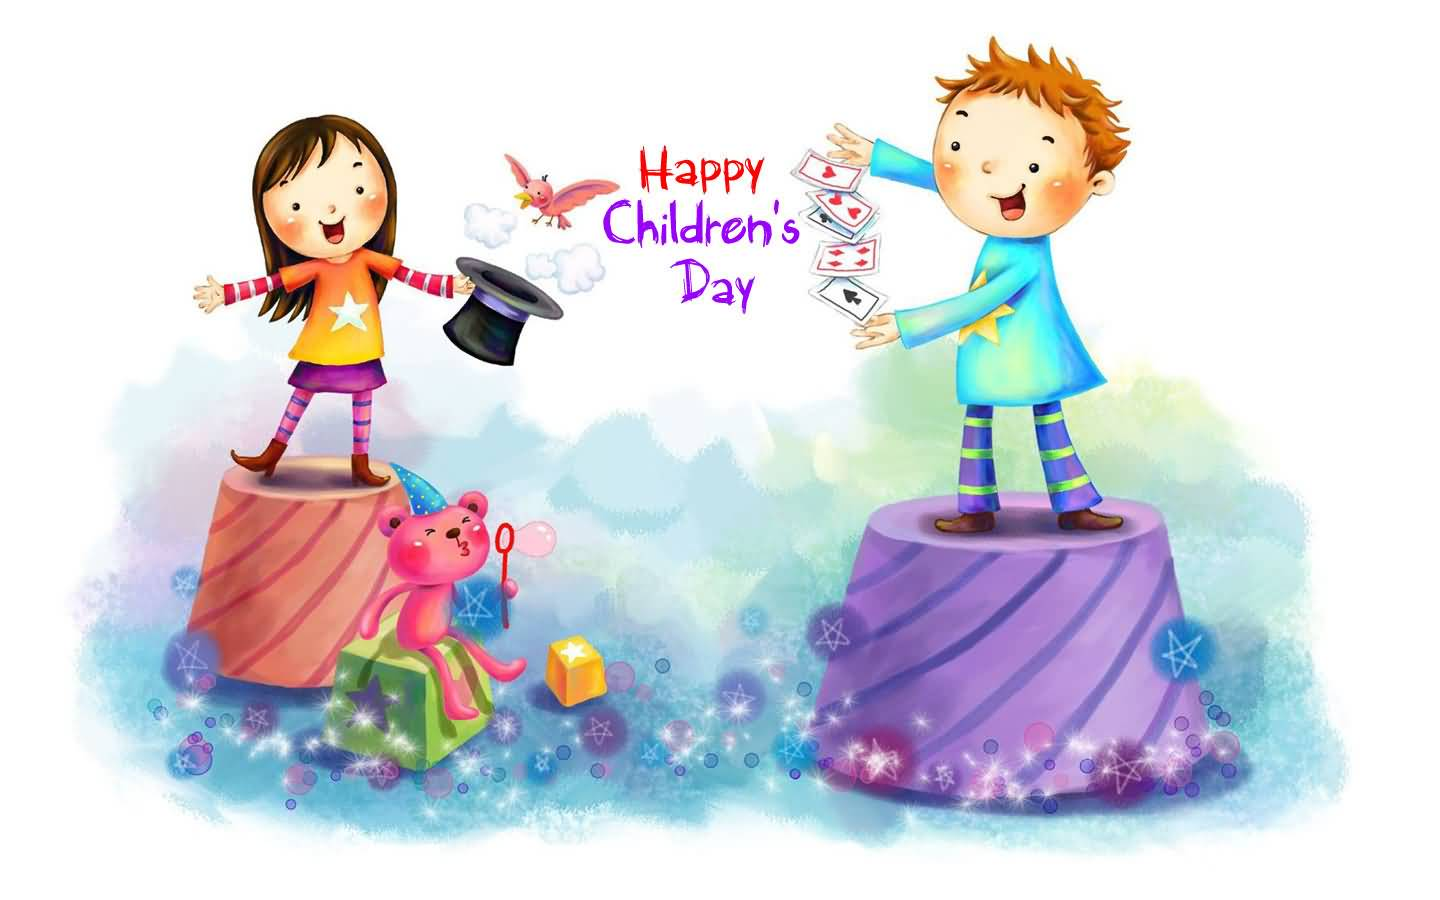 Happy Children's Day 2017 Cartoon & Funny Images